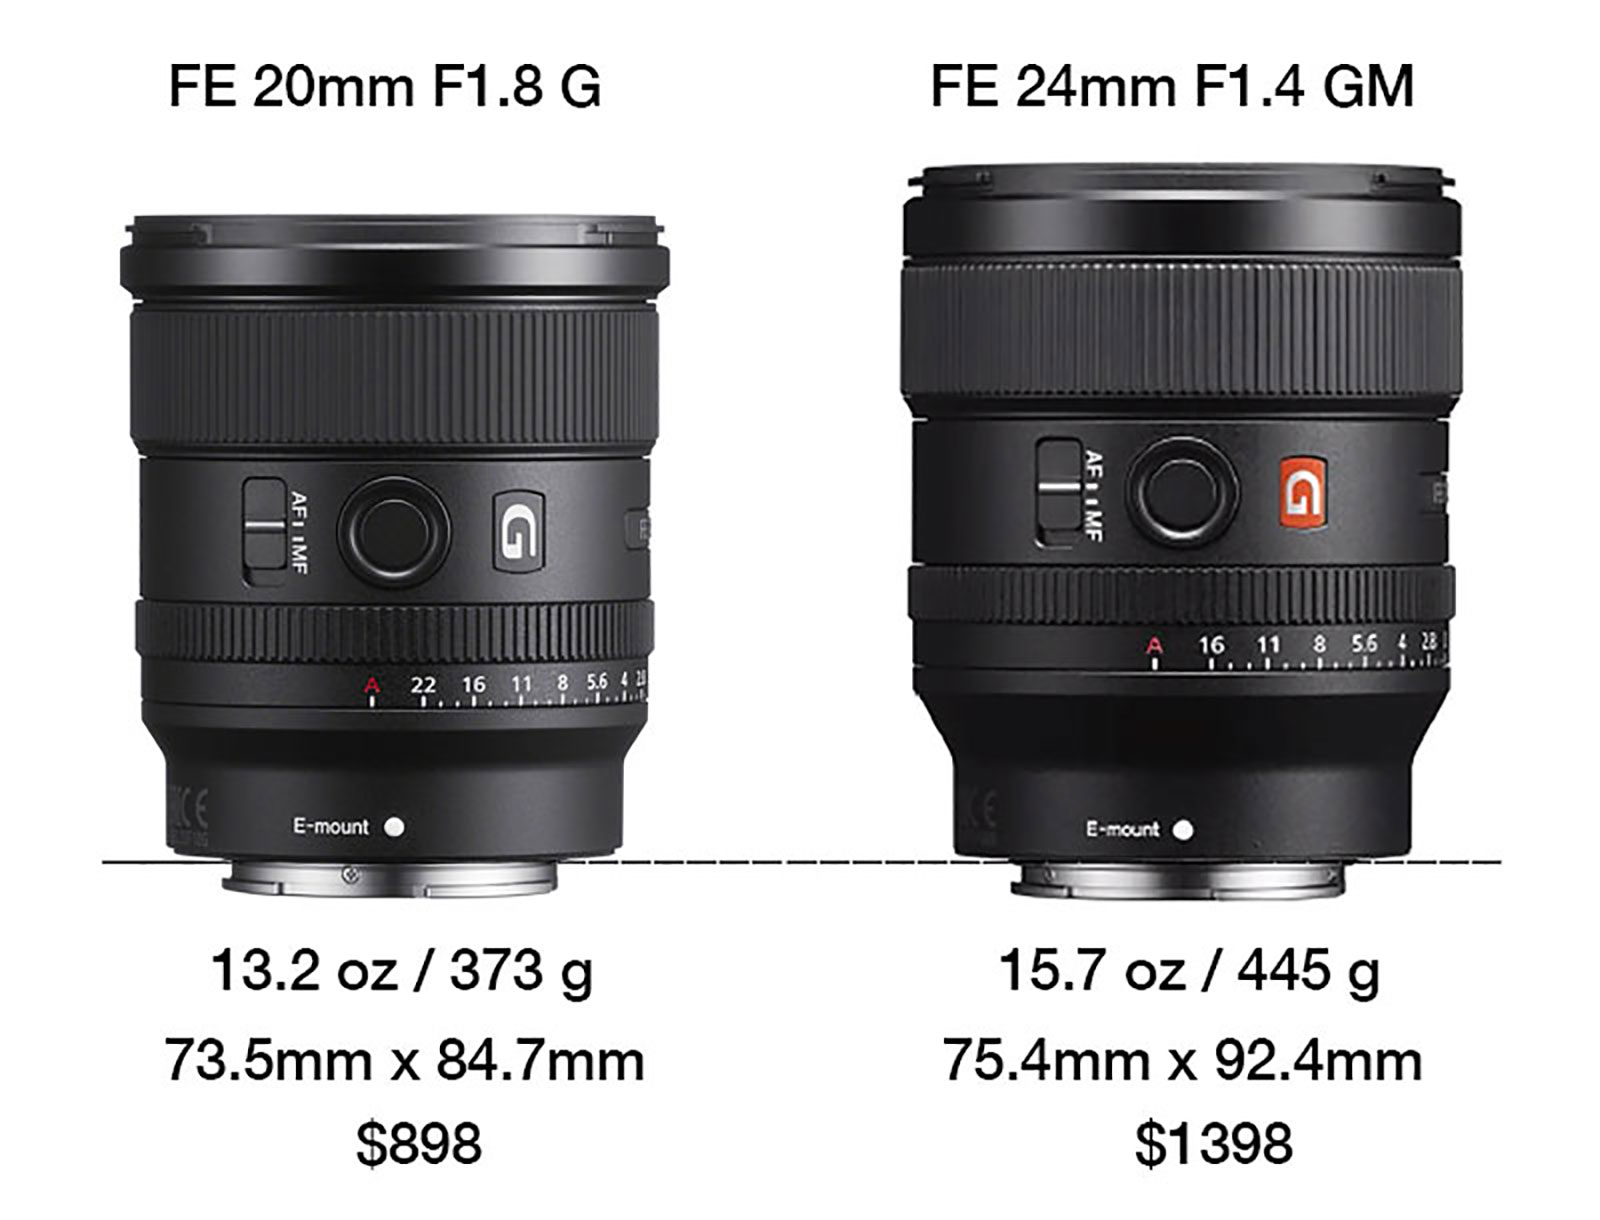 Sony FE 20mm F1.8 G vs FE 24mm F1.4 GM lens comparison